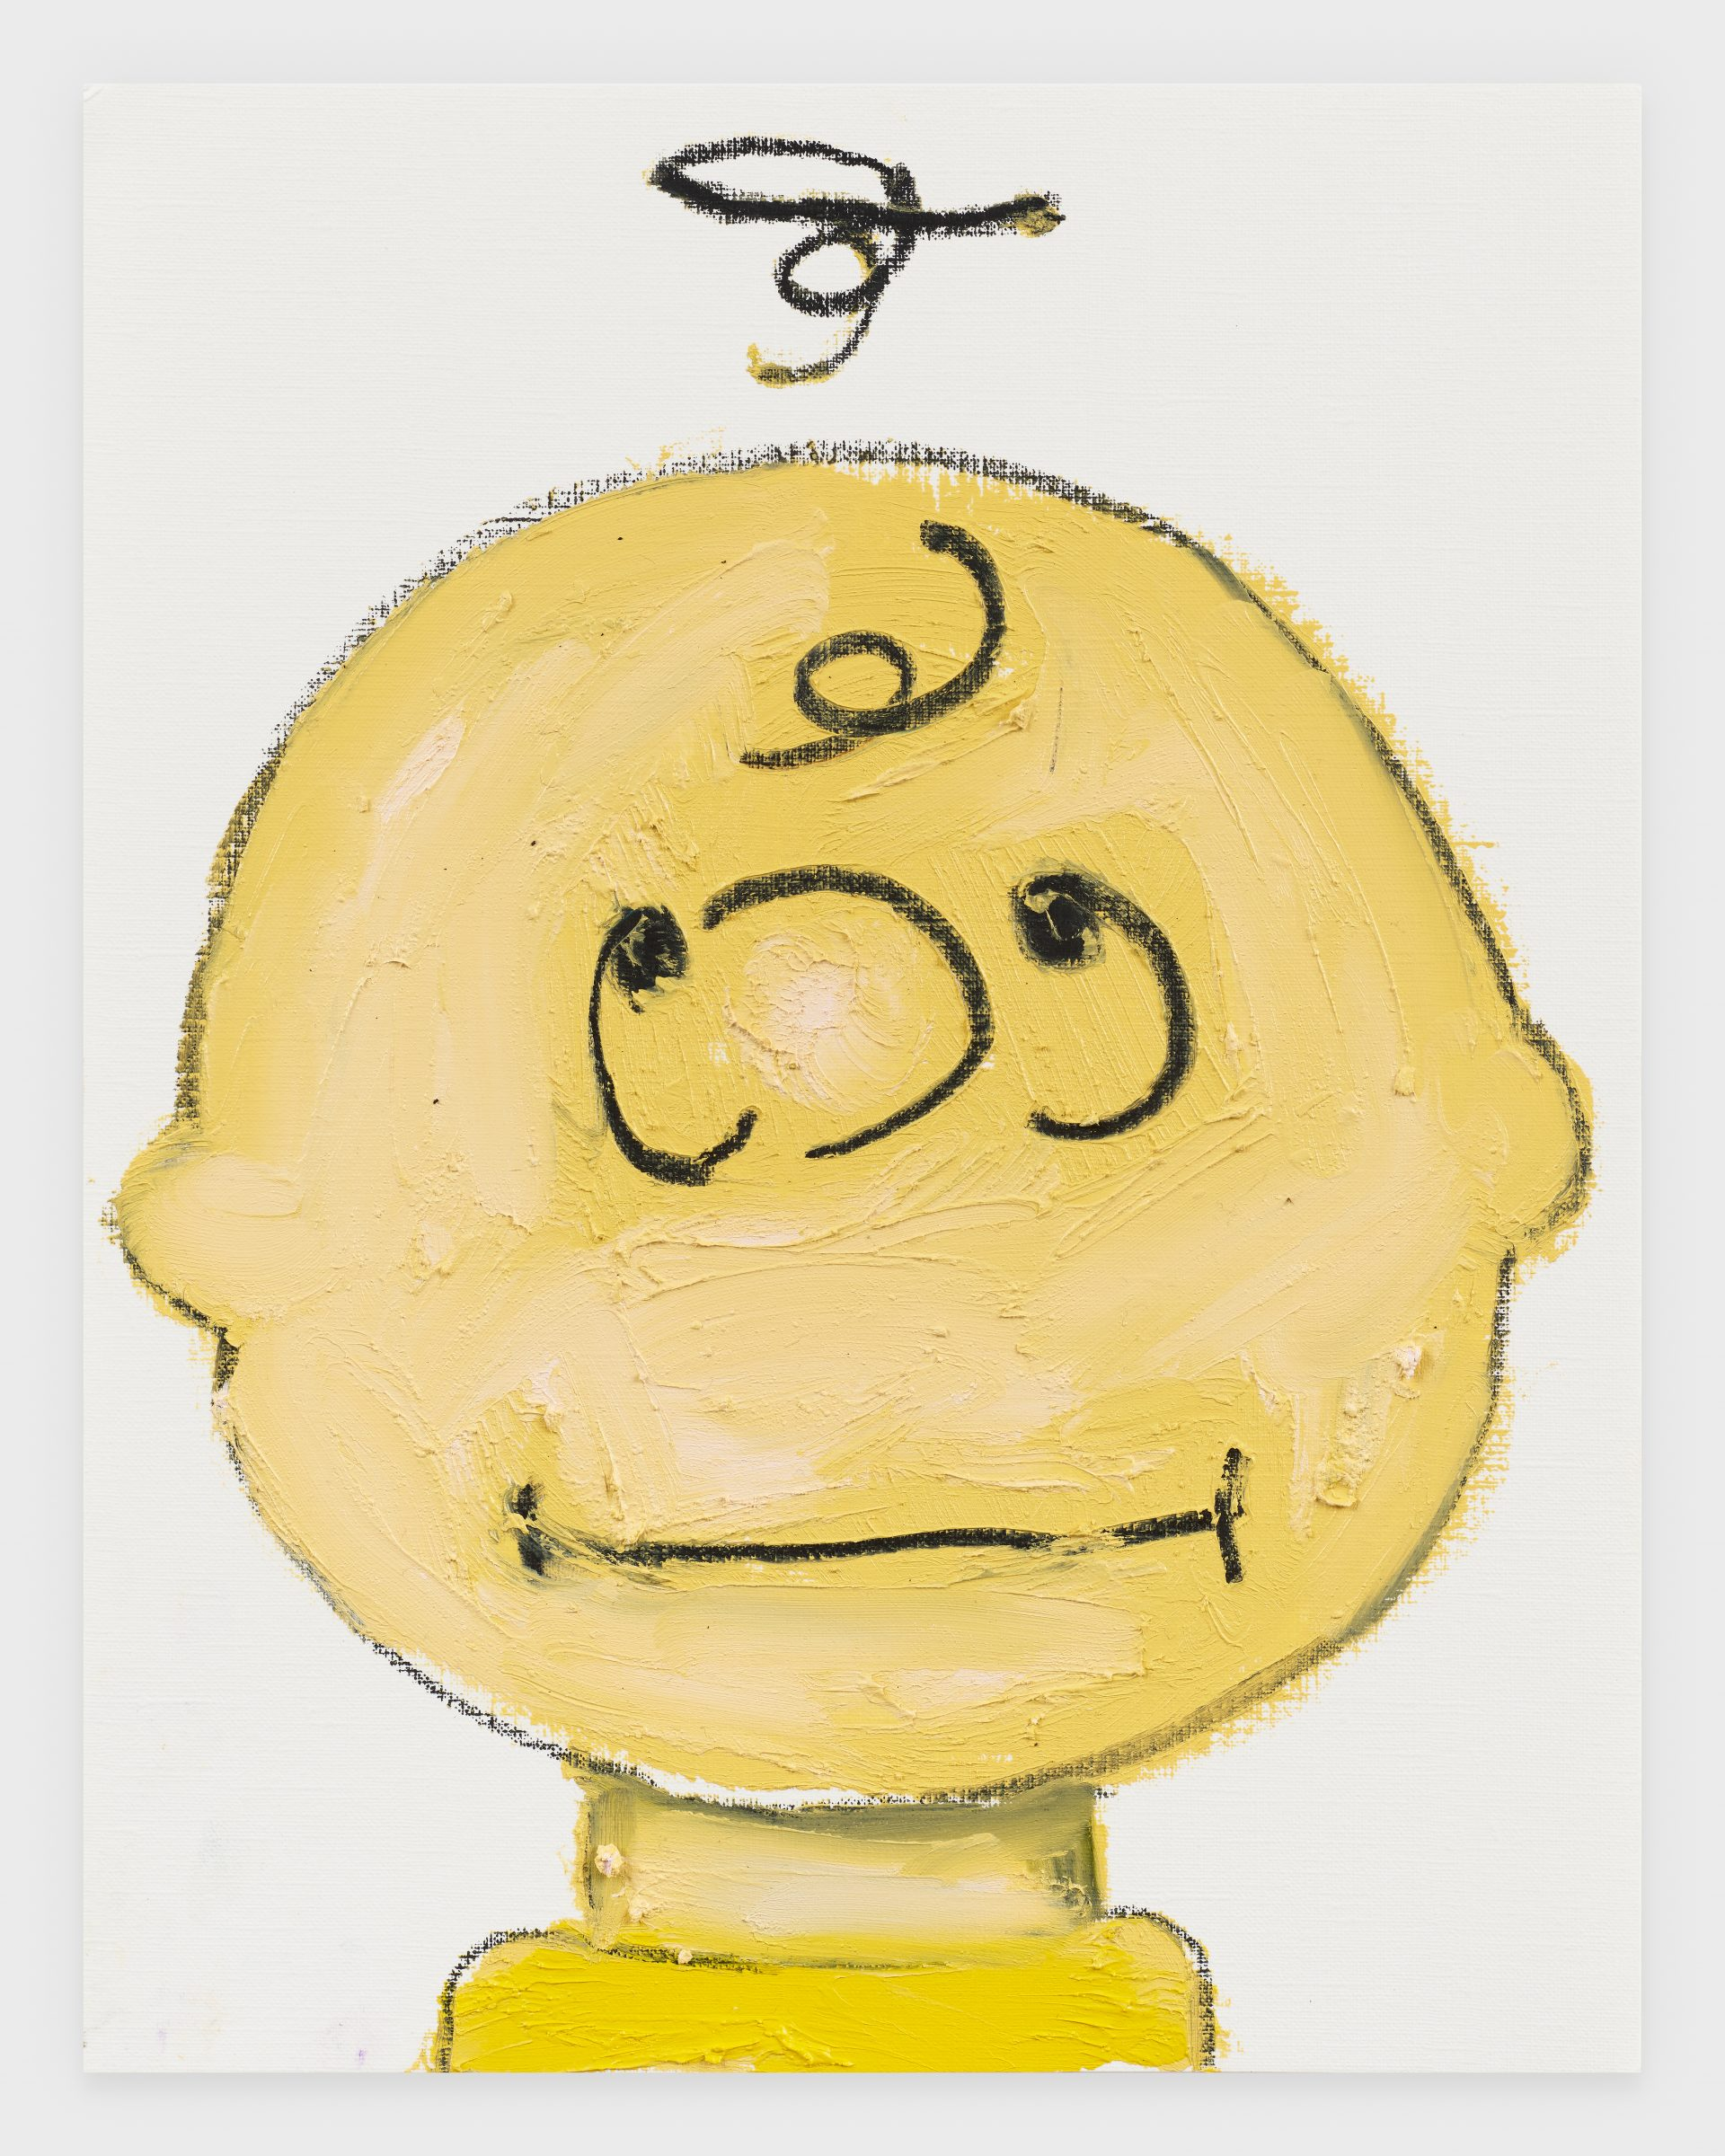 Charlie Brown, 2020, Oil stick on archival paper, 11 x 14 inches